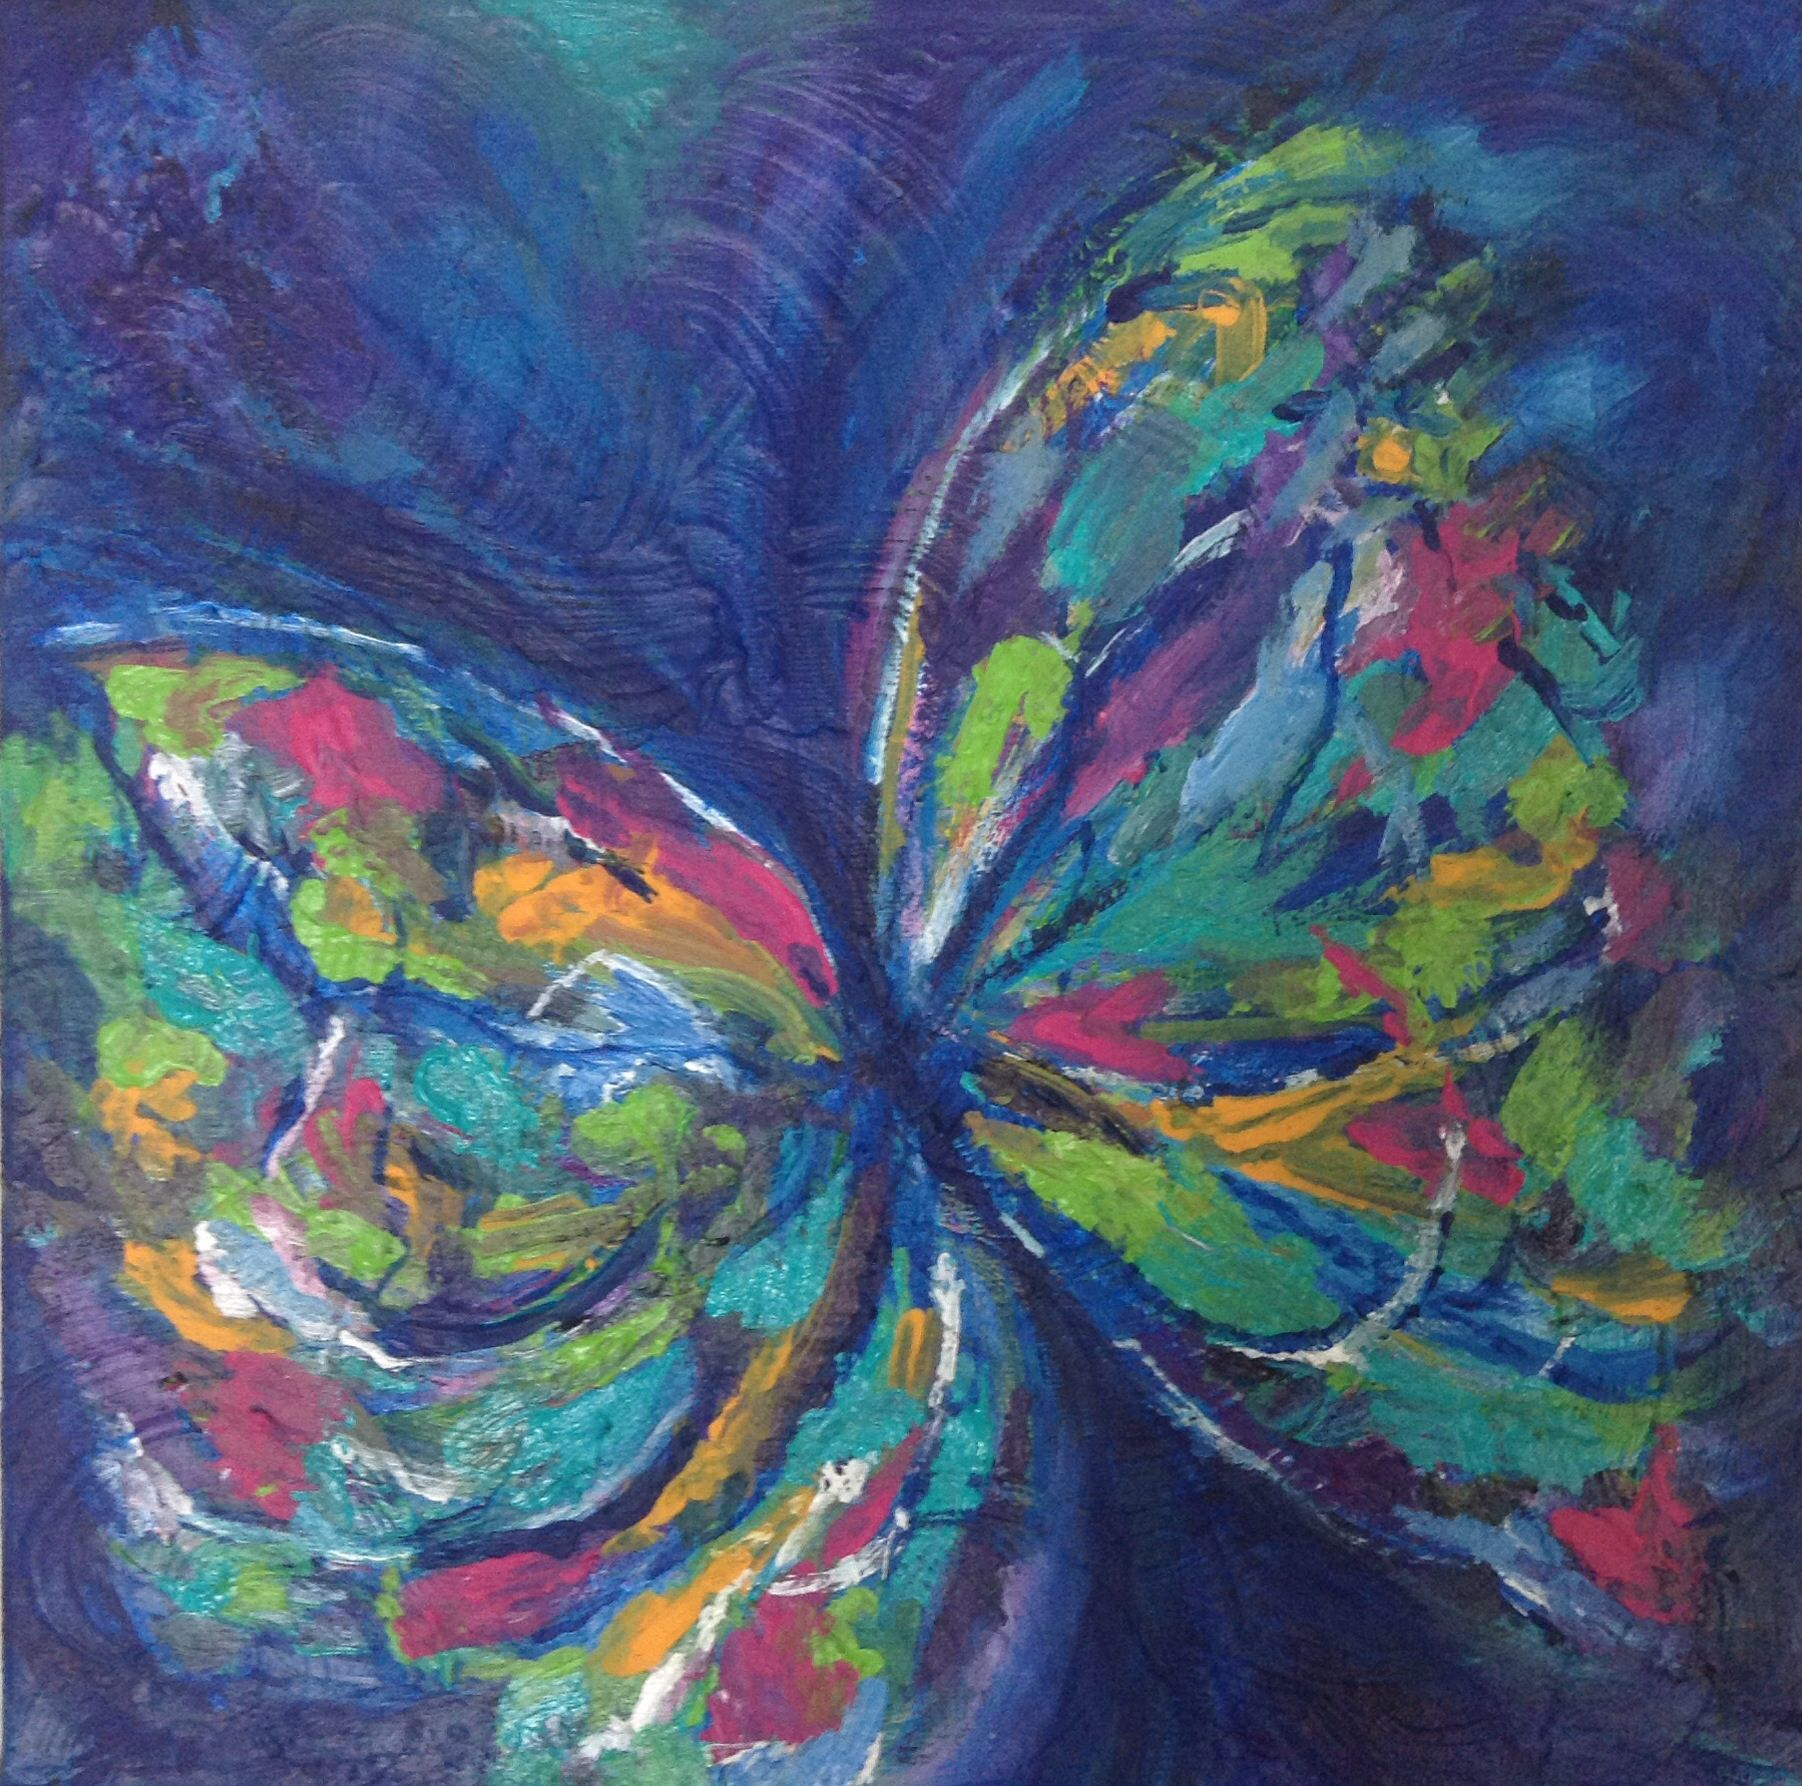 Butterfly, Acrylic, Art | Artists that inspire | Pinterest